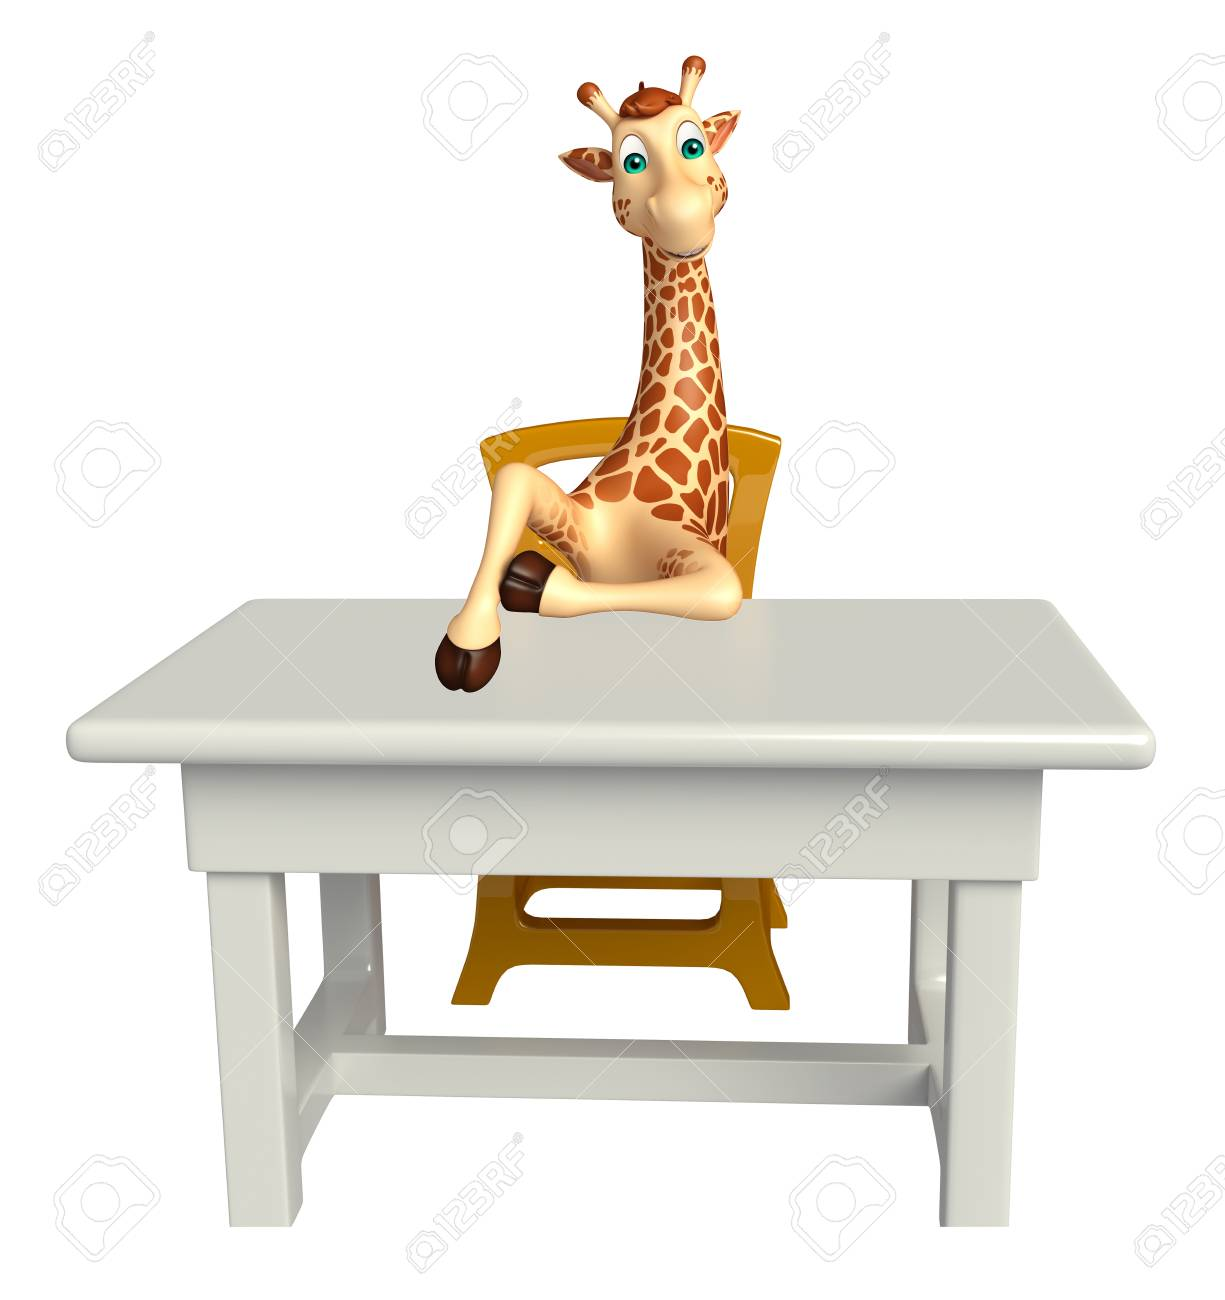 3d Rendered Illustration Of Giraffe Cartoon Character With Table And Chair  Stock Illustration   53994789